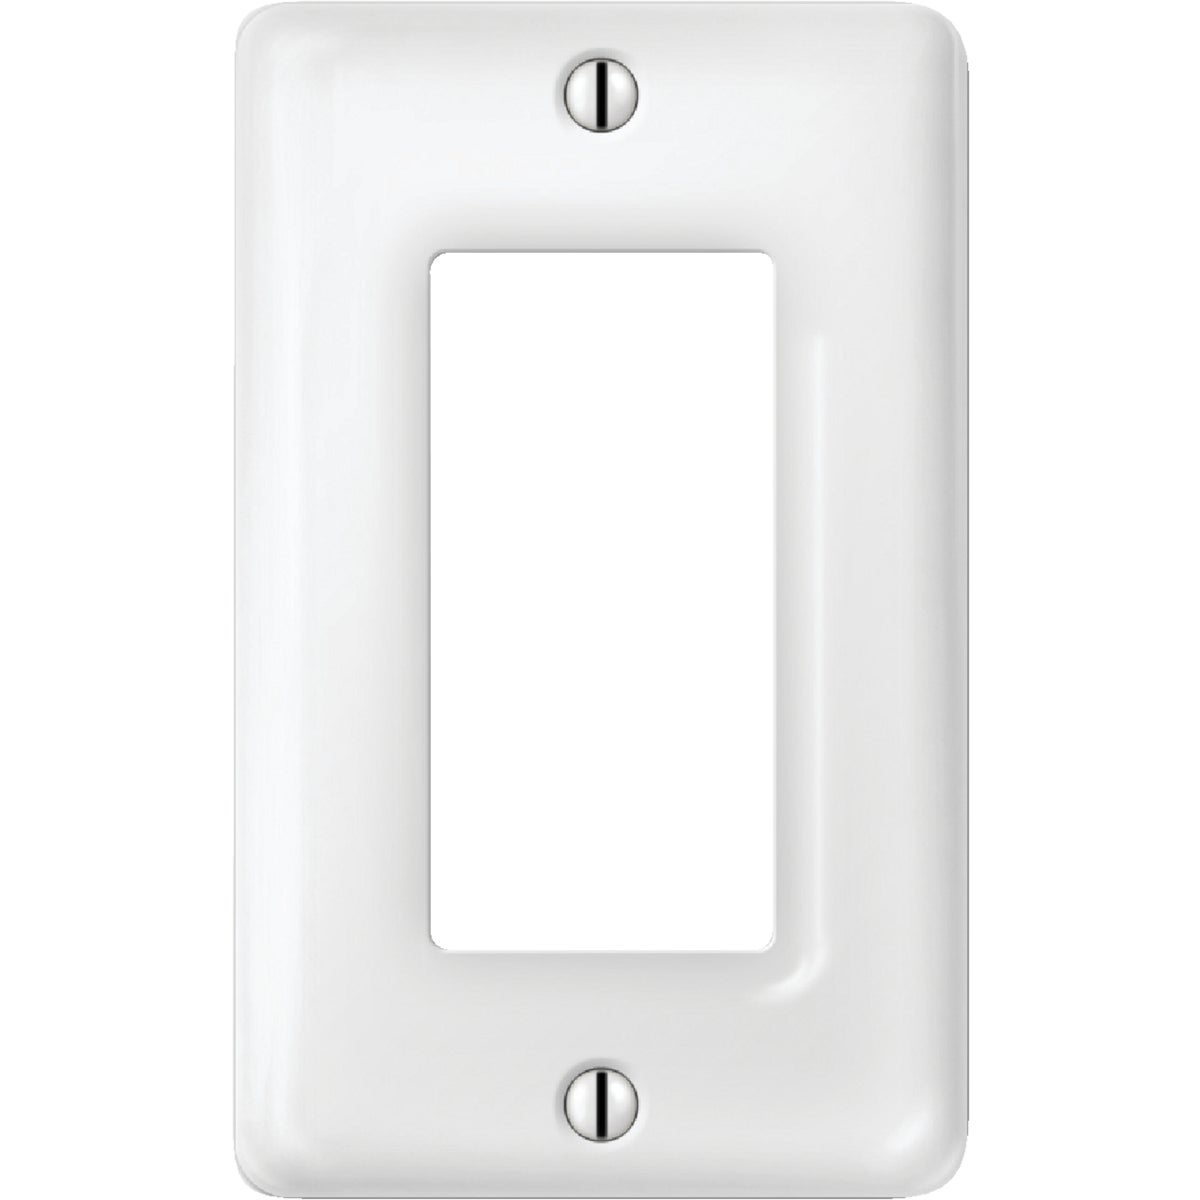 WHT PORC GFI WALL PLATE - 987CW by Jackson Deerfield Mf